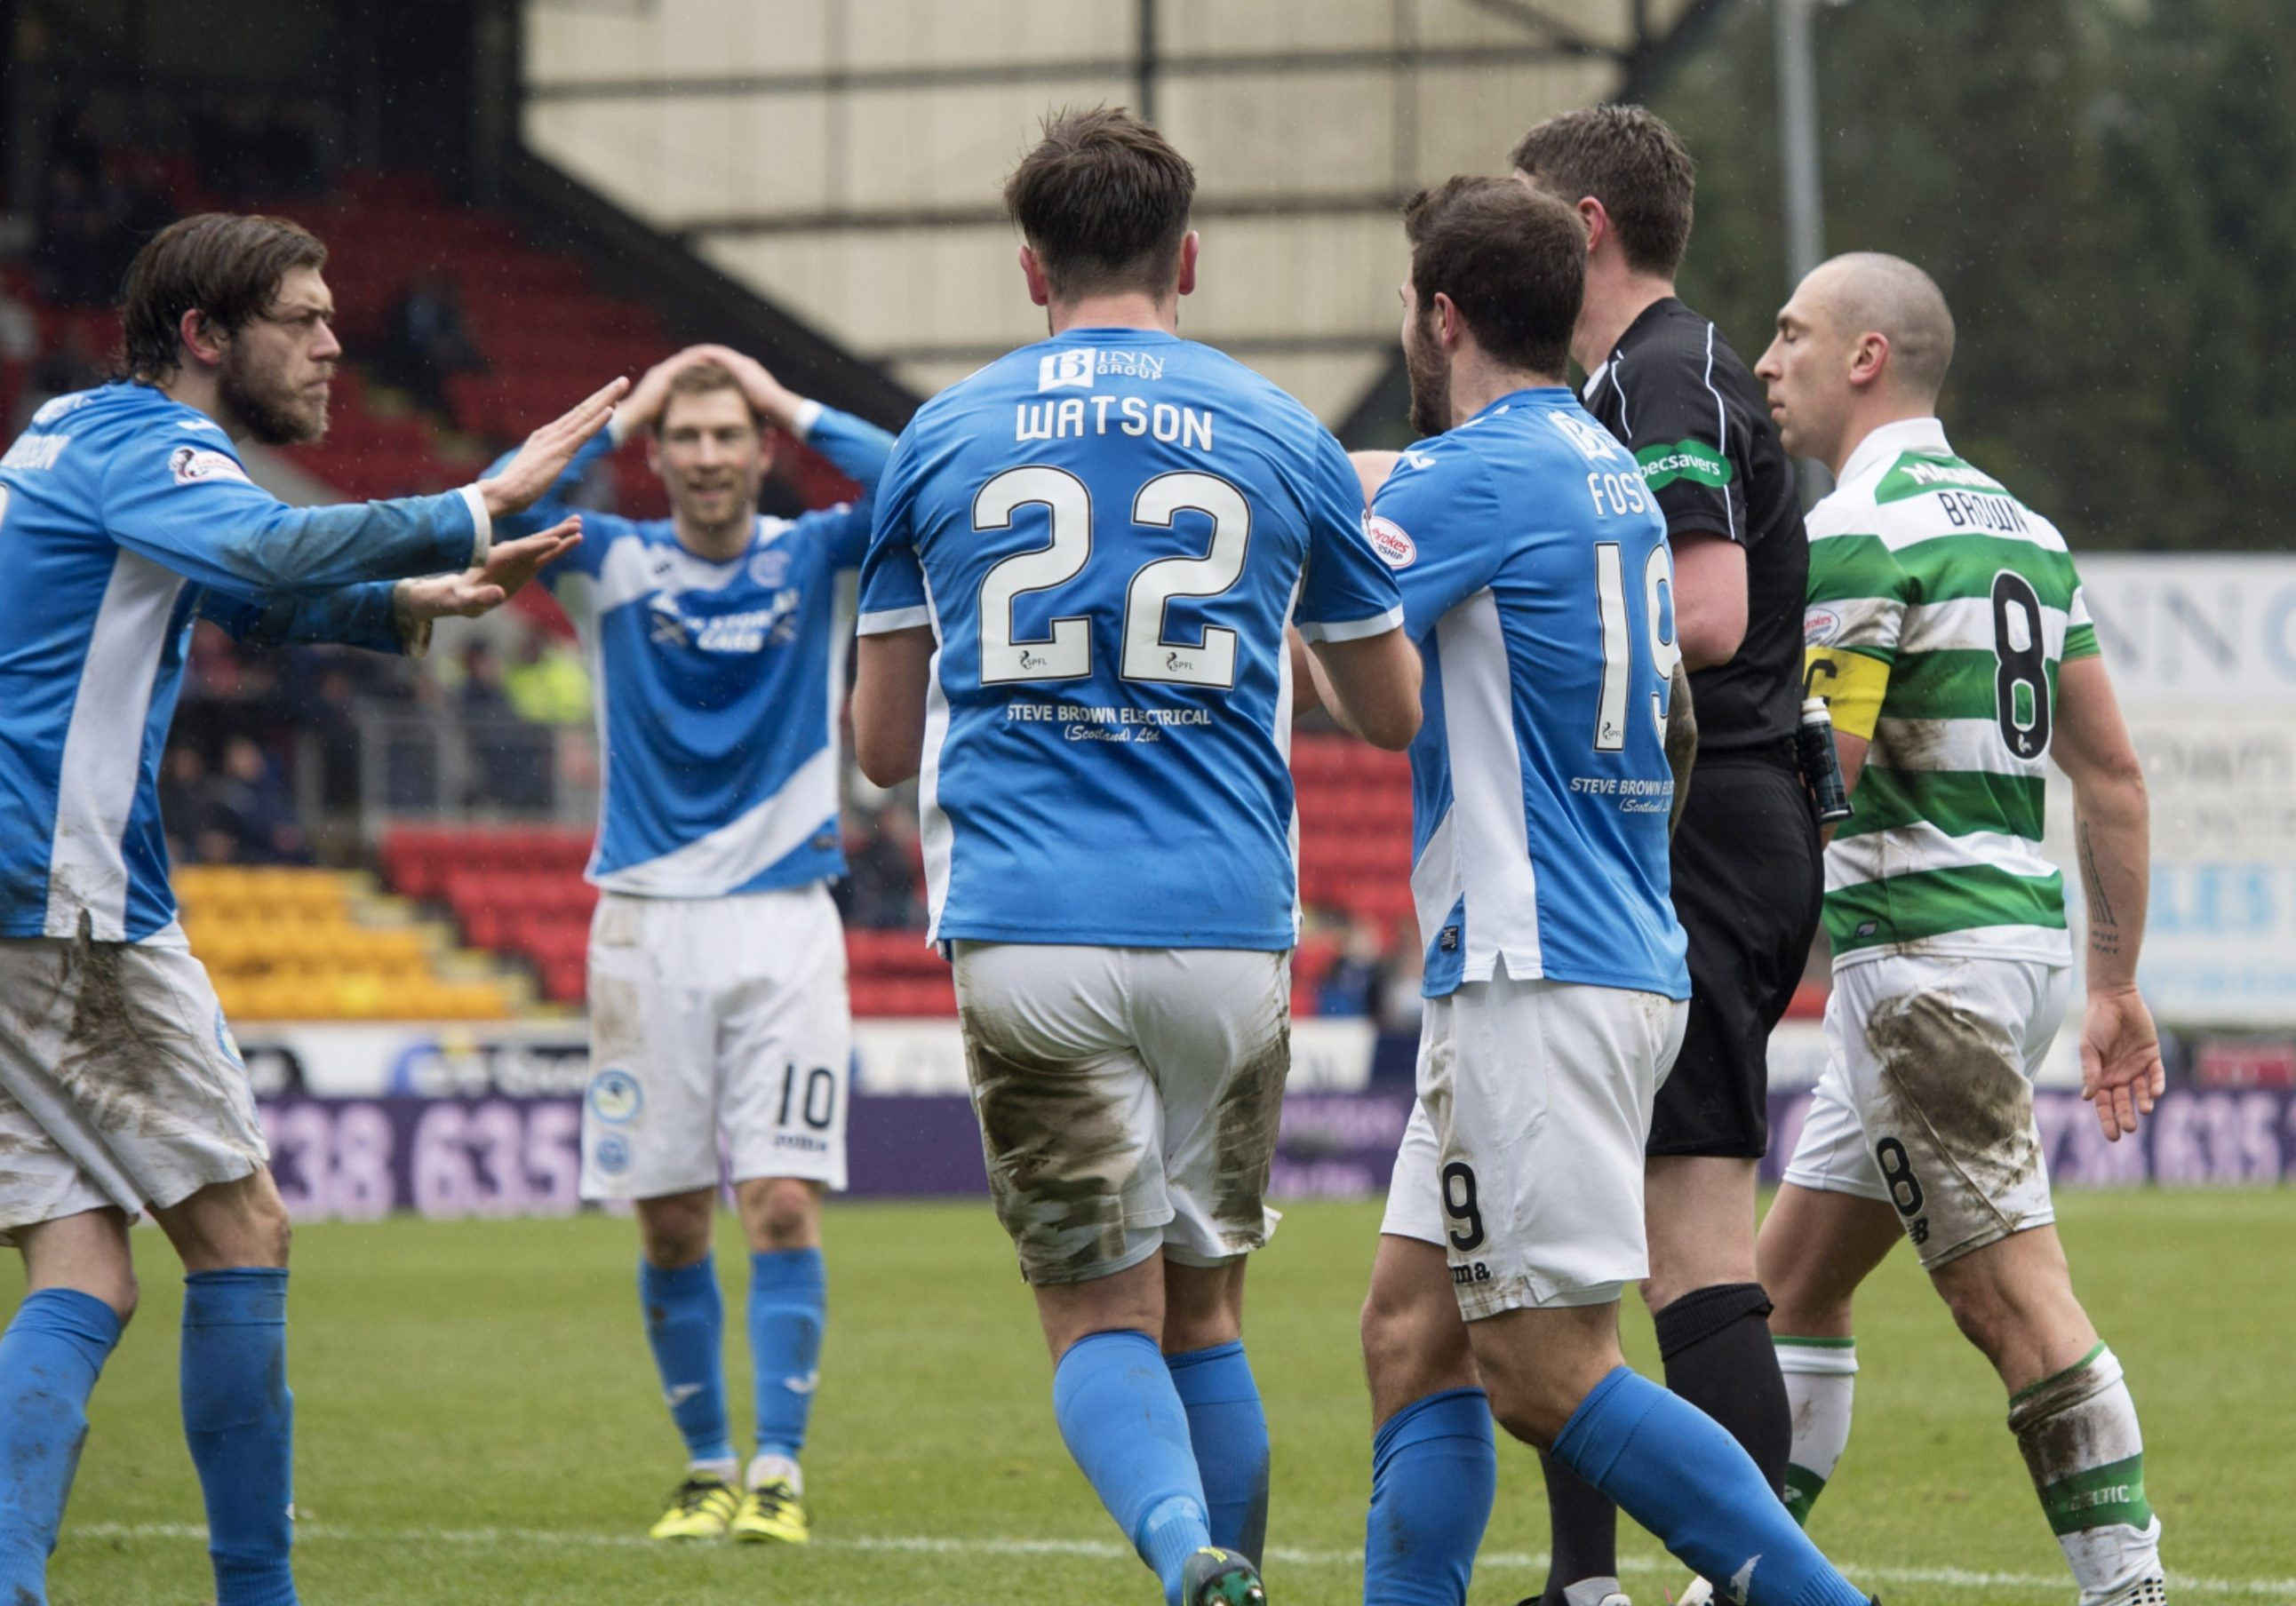 The St Johnstone players vent fury after penalty decision.